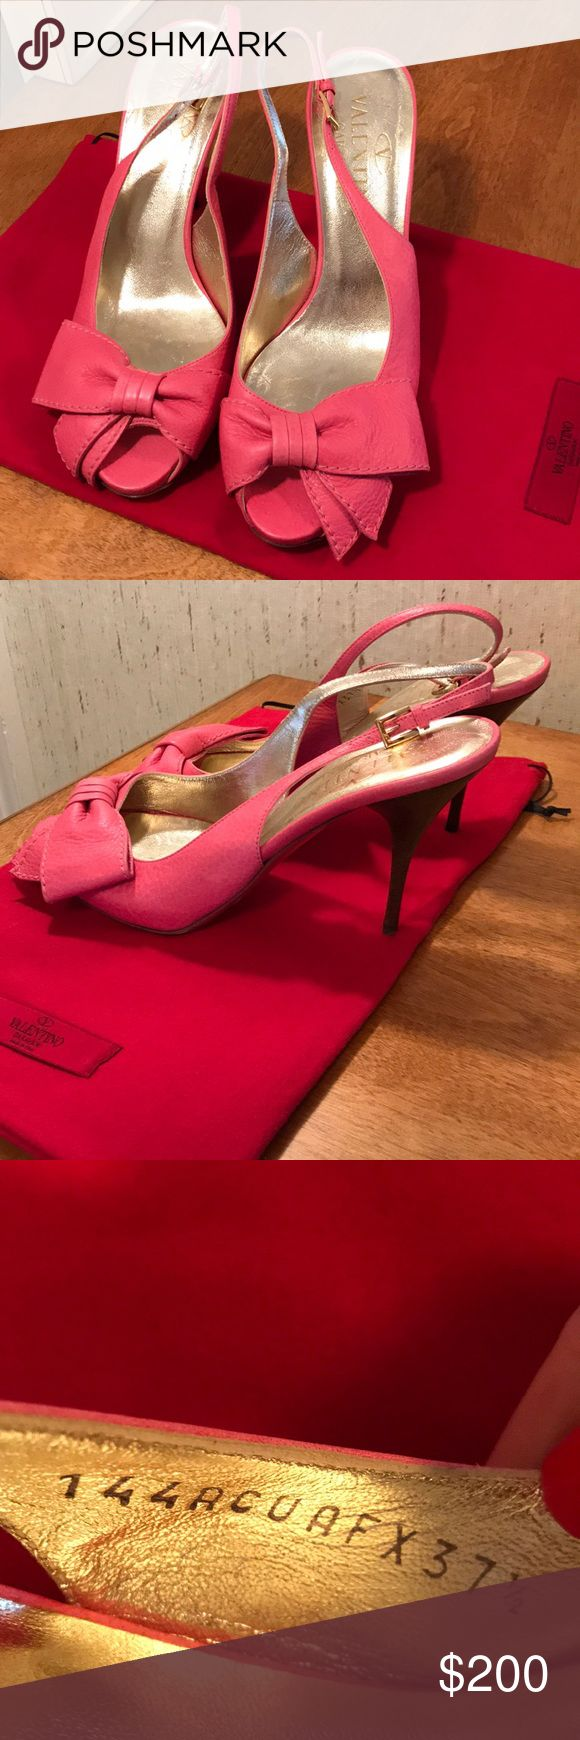 "NWB authentic Valentino sling back peep pumps. New authentic Valentino peep toe sling back pumps with bow detail. Color coral pink. Size 37.5. Heel height 4"". No bar but comes with shoe bag. Please do not make low offers. My price is firm. DISCLAIMER: You buy it, you keep it! If you are a habitual returner, do not buy from my closet. I am not responsible for you changing your mind about your purchase if you don't like what you received, or the size or color isn't right. If you rely on…"